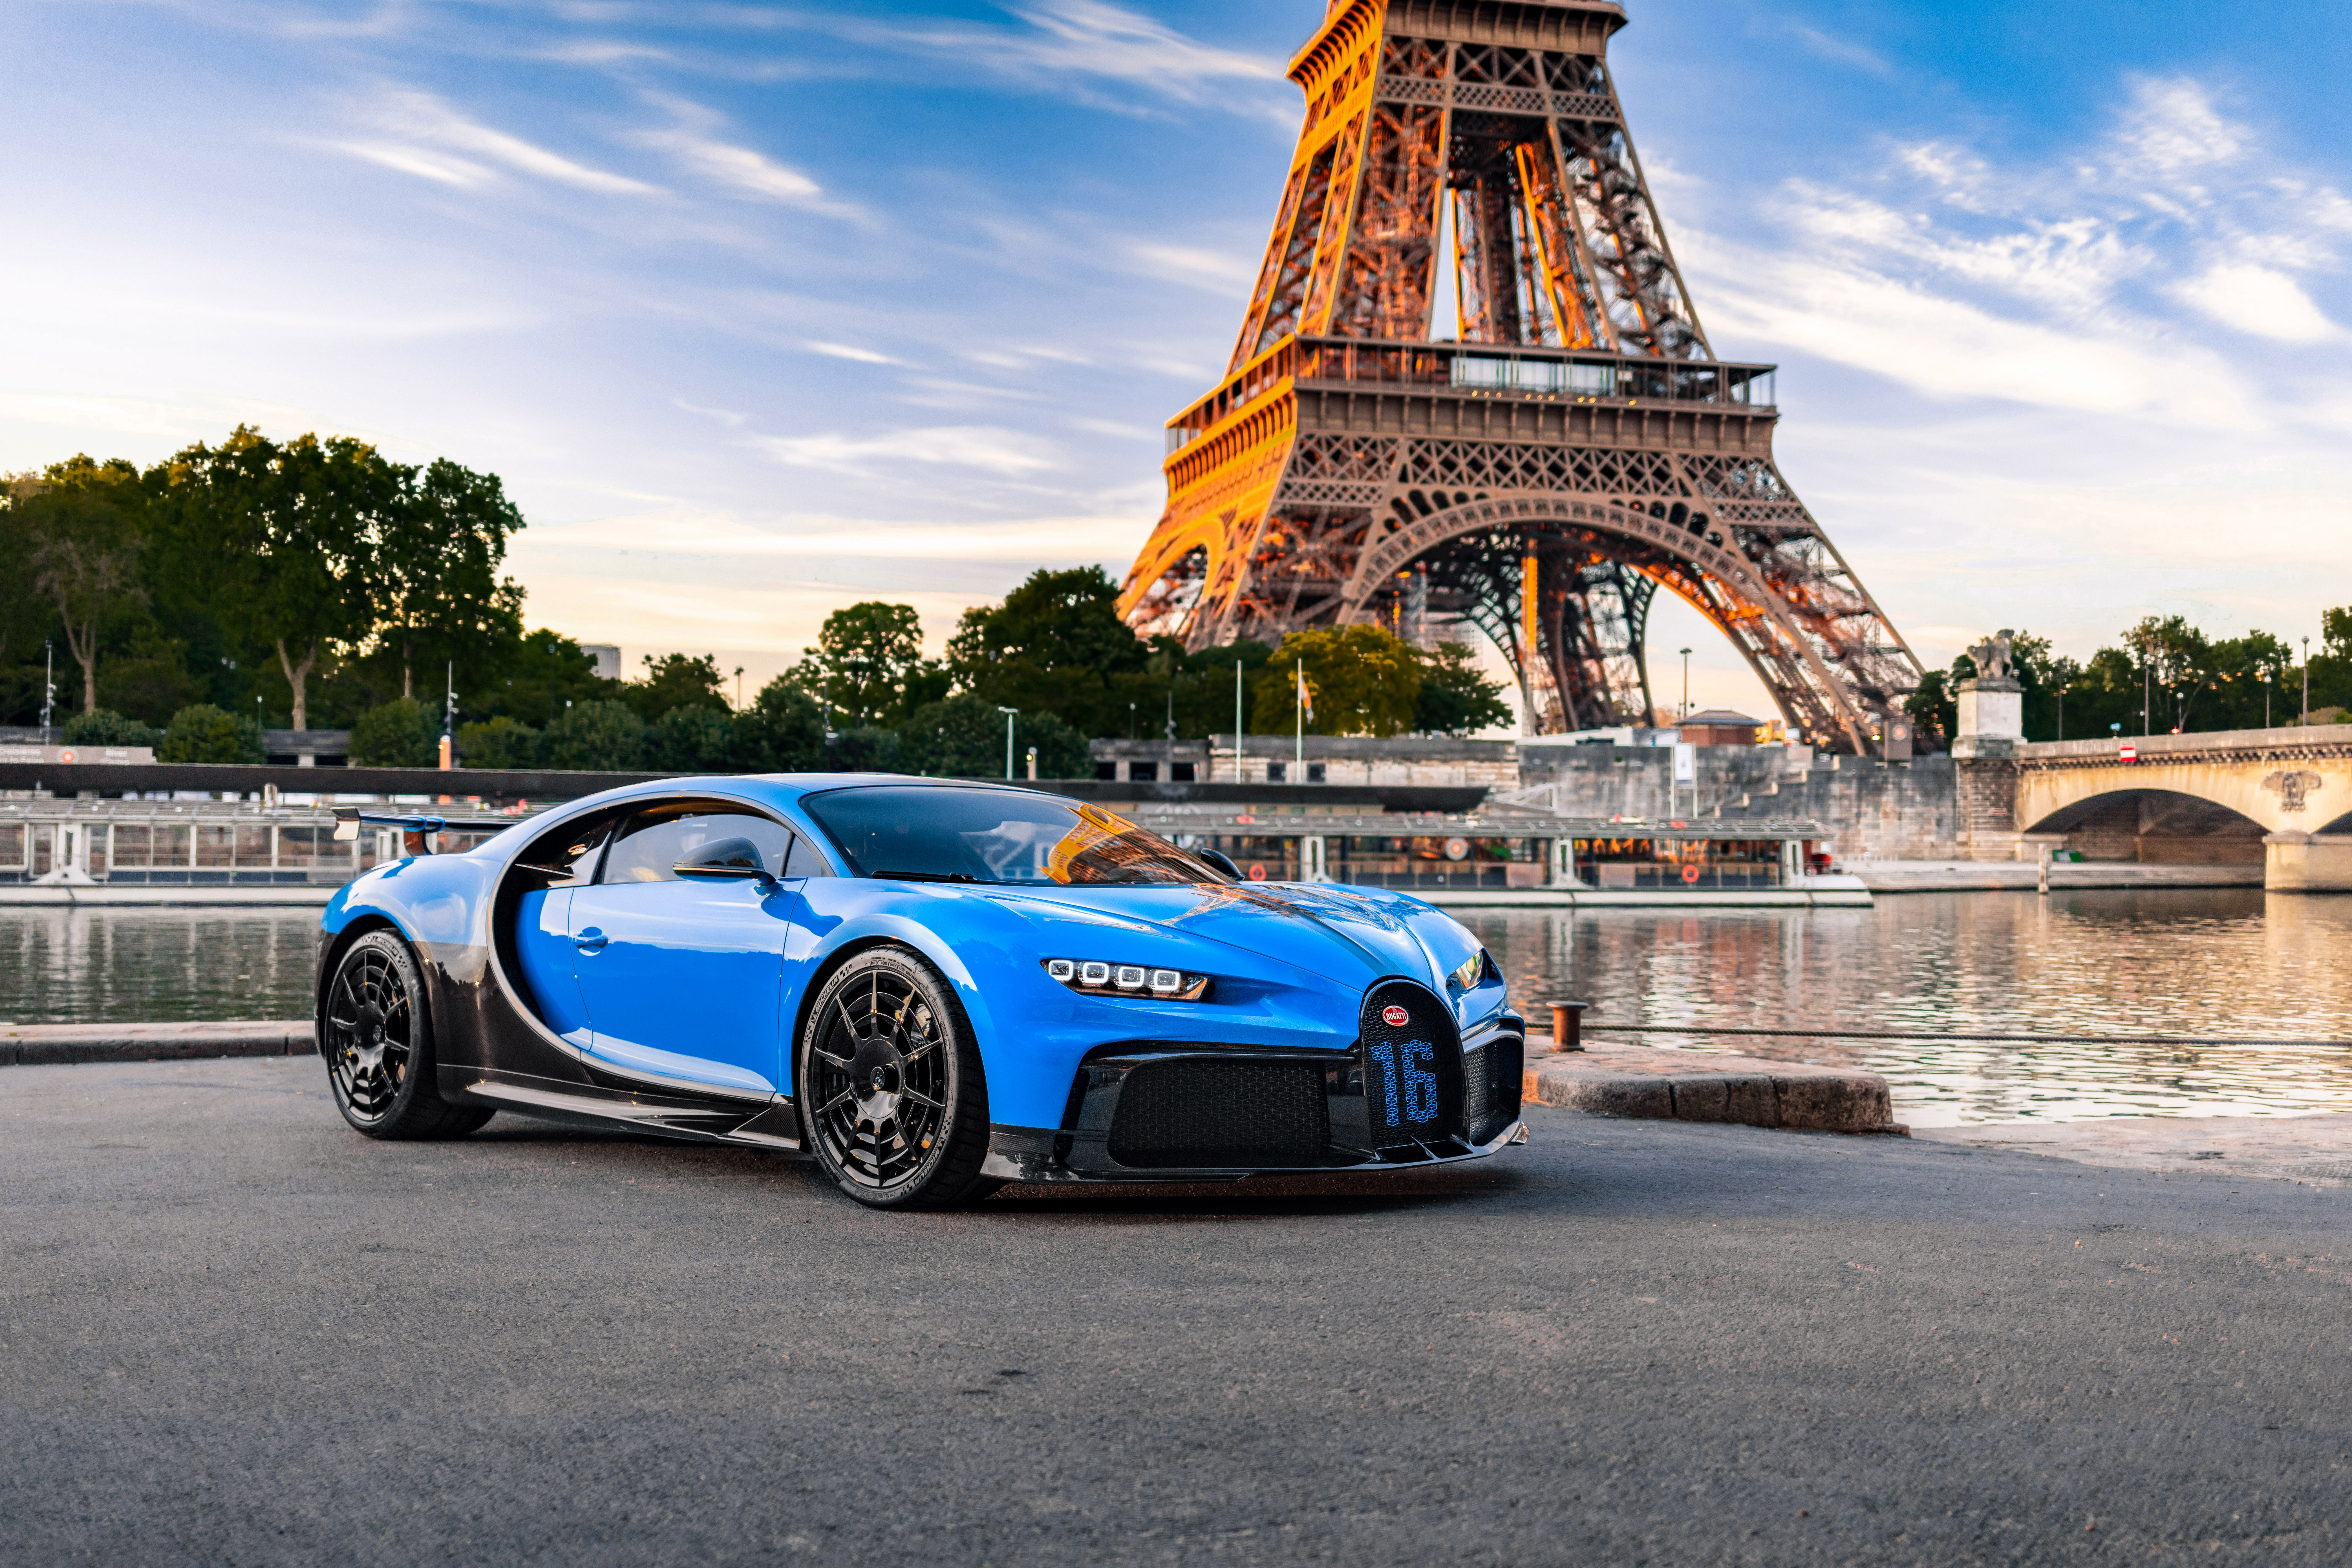 Bugatti Chiron Pur Sport 4k Wallpaper 2020 Paris 5k 8k Cars 1205